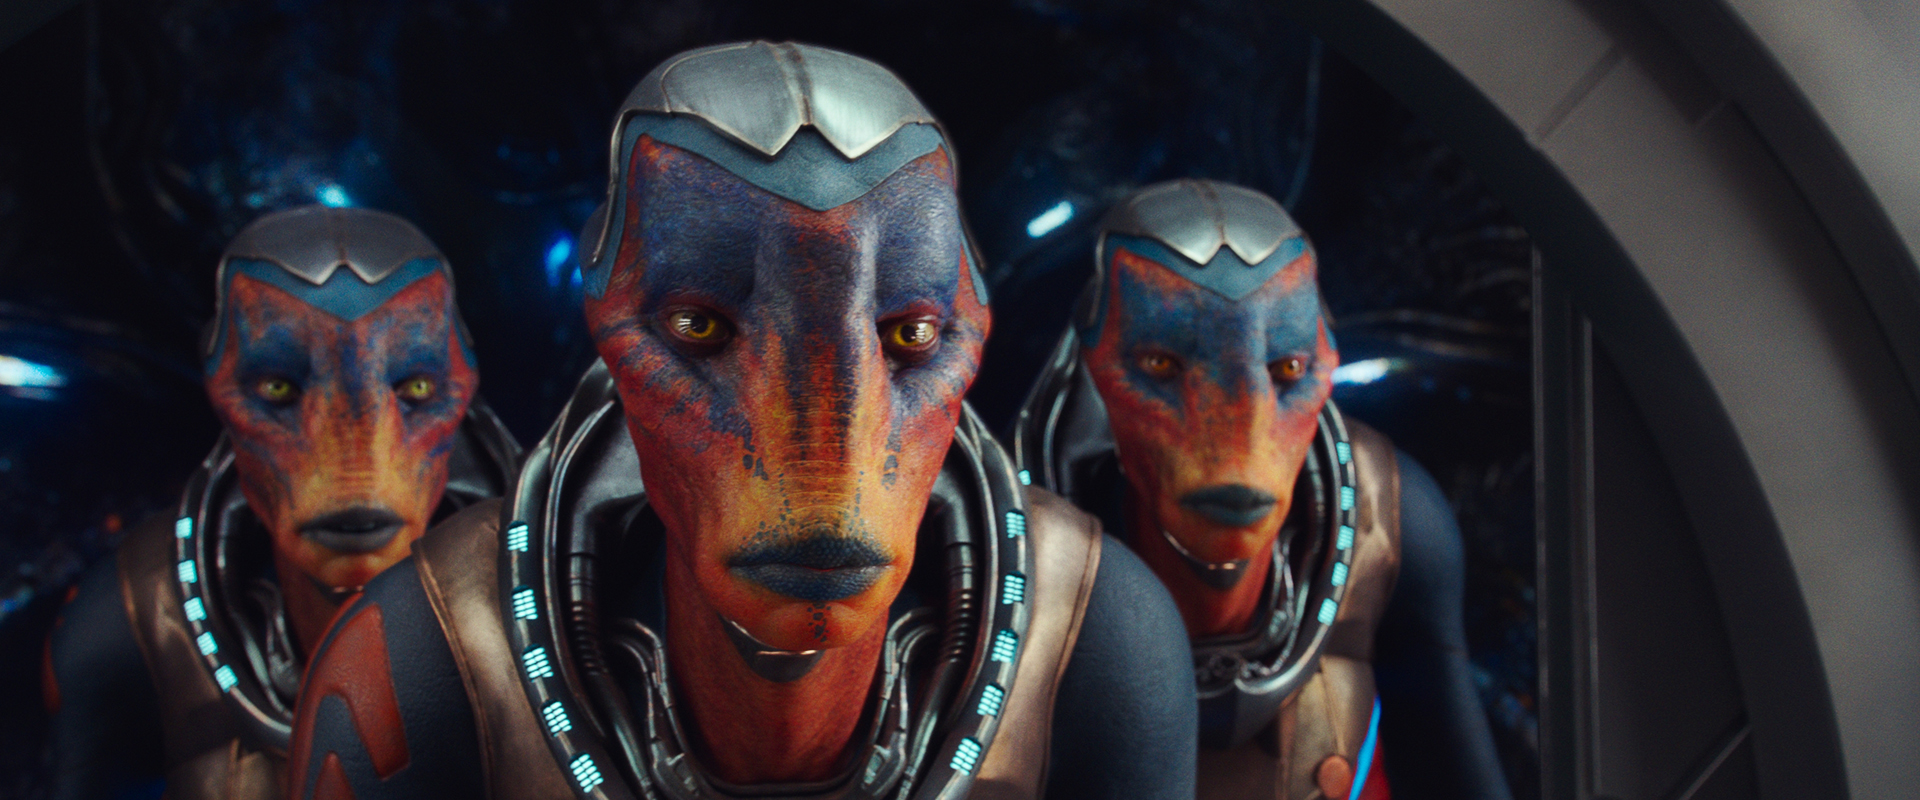 valerian and the city of a thousand planets 2017 mr